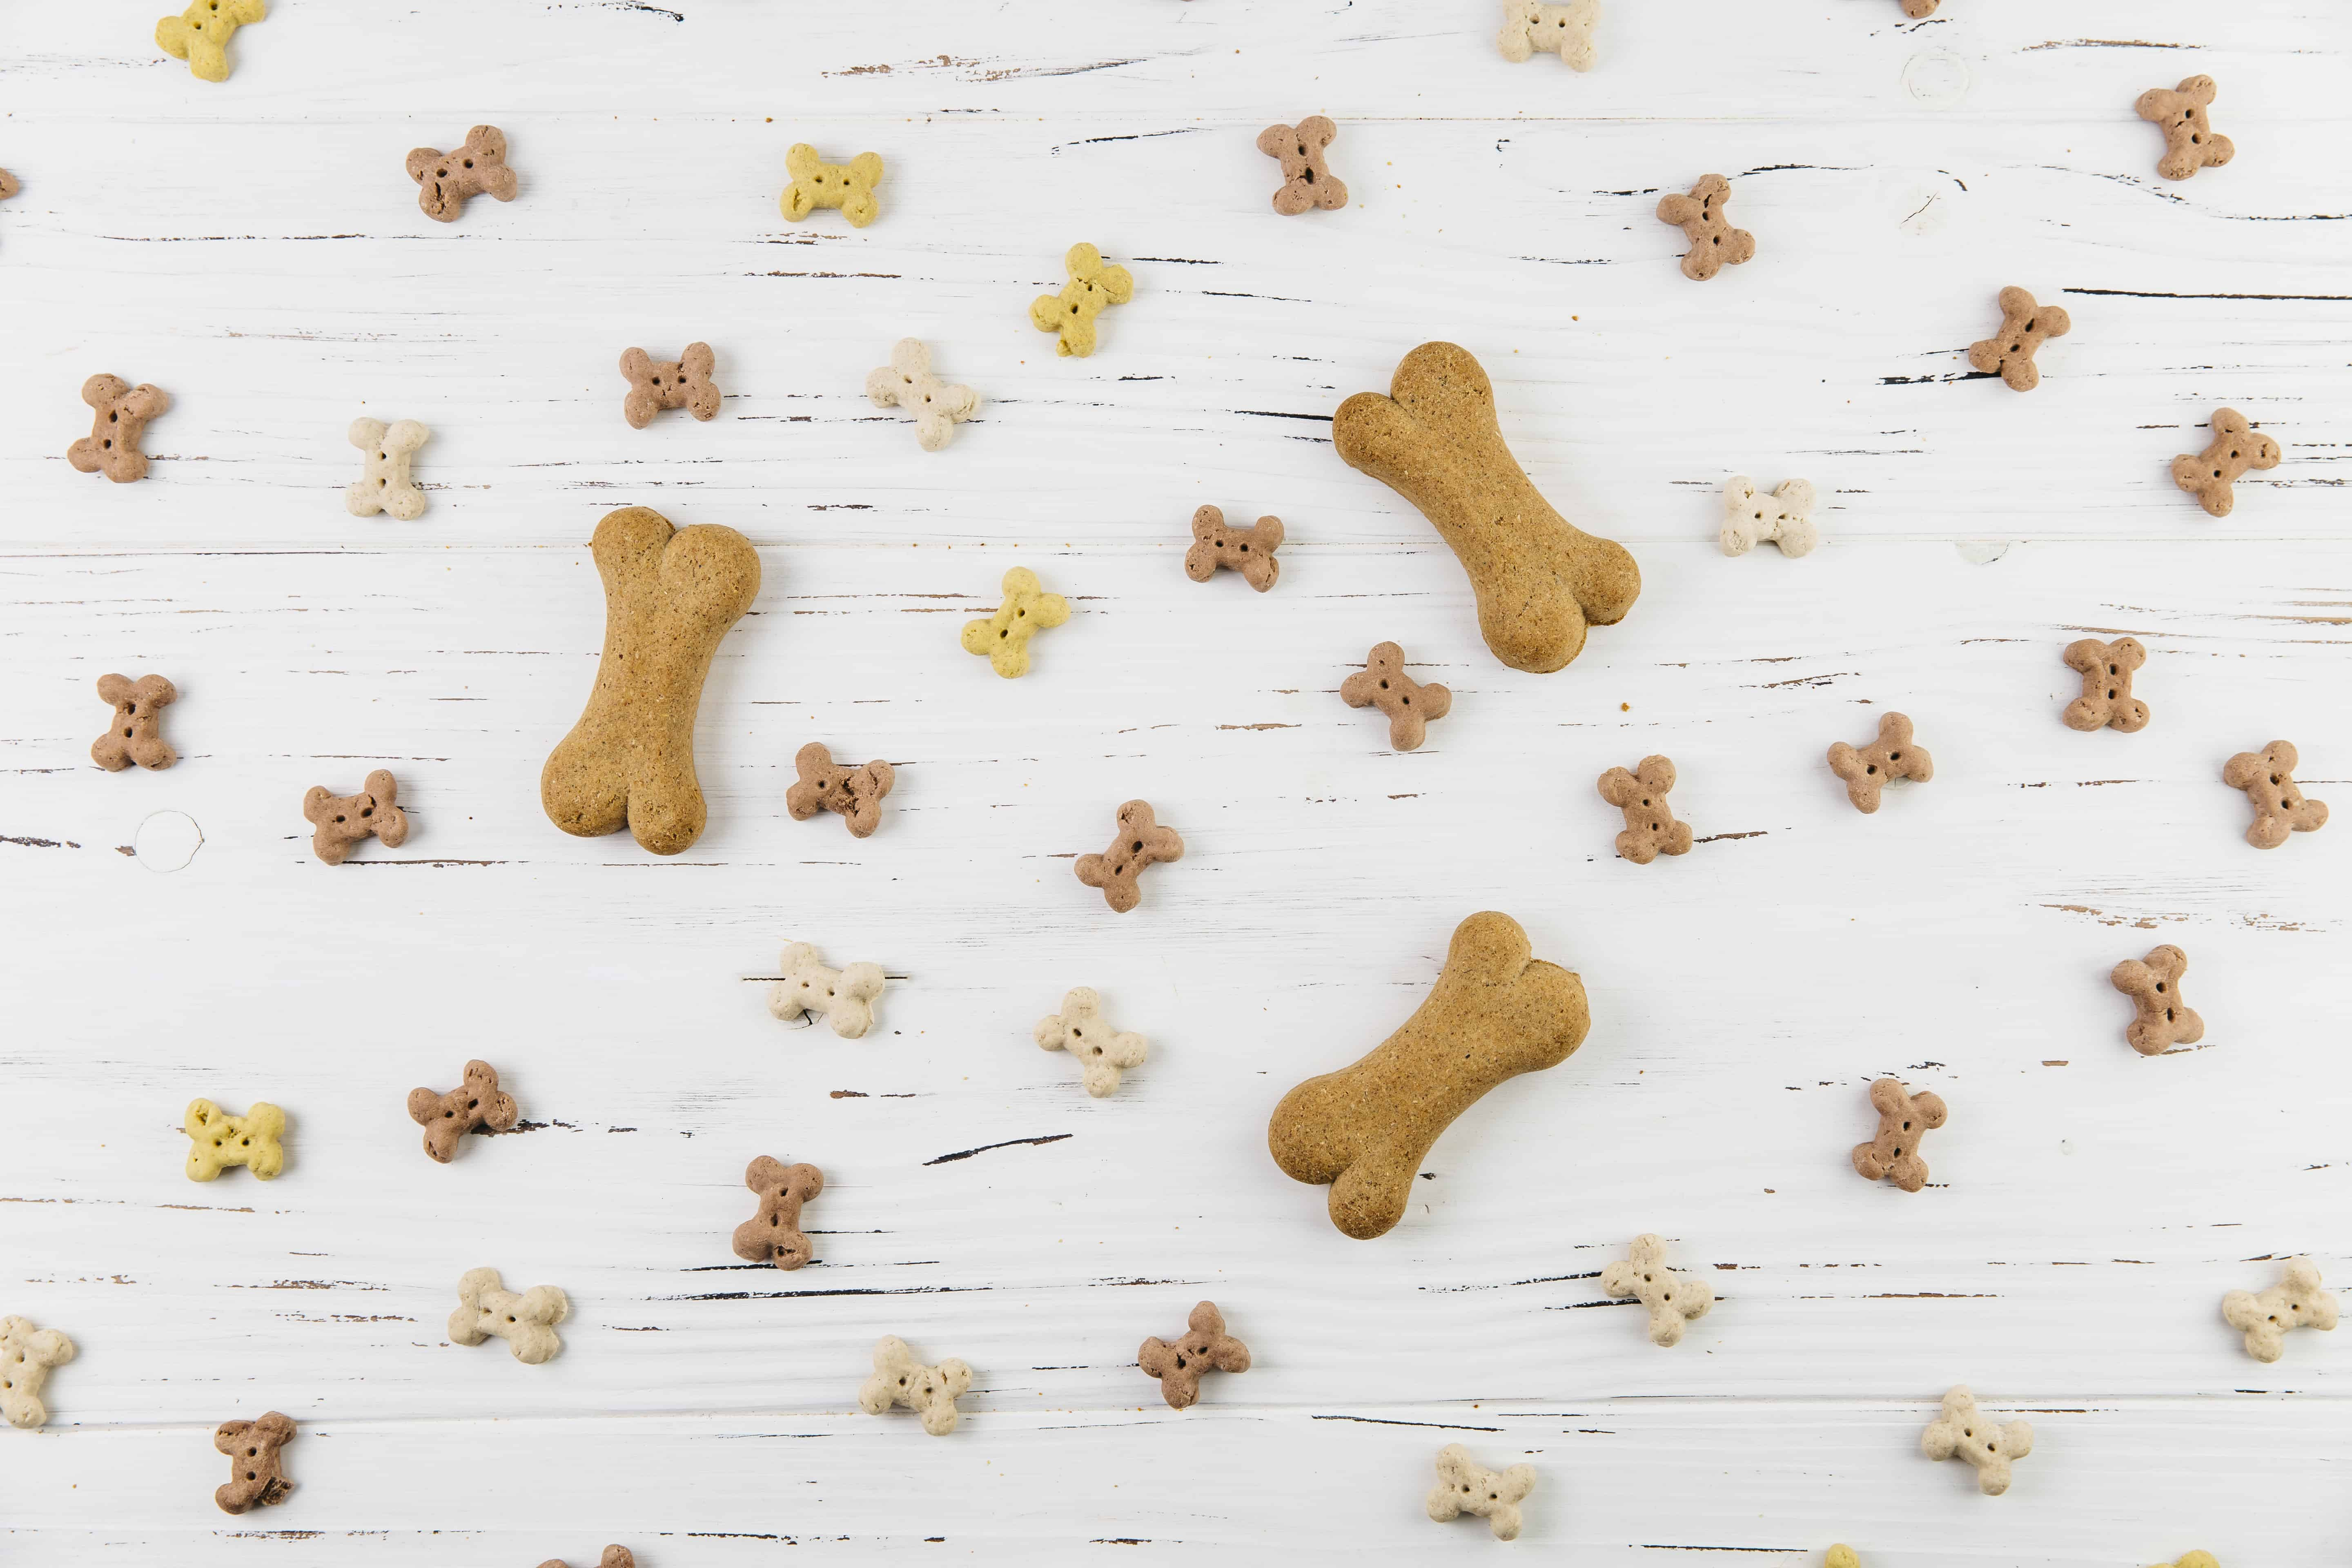 scattered dog food and treats